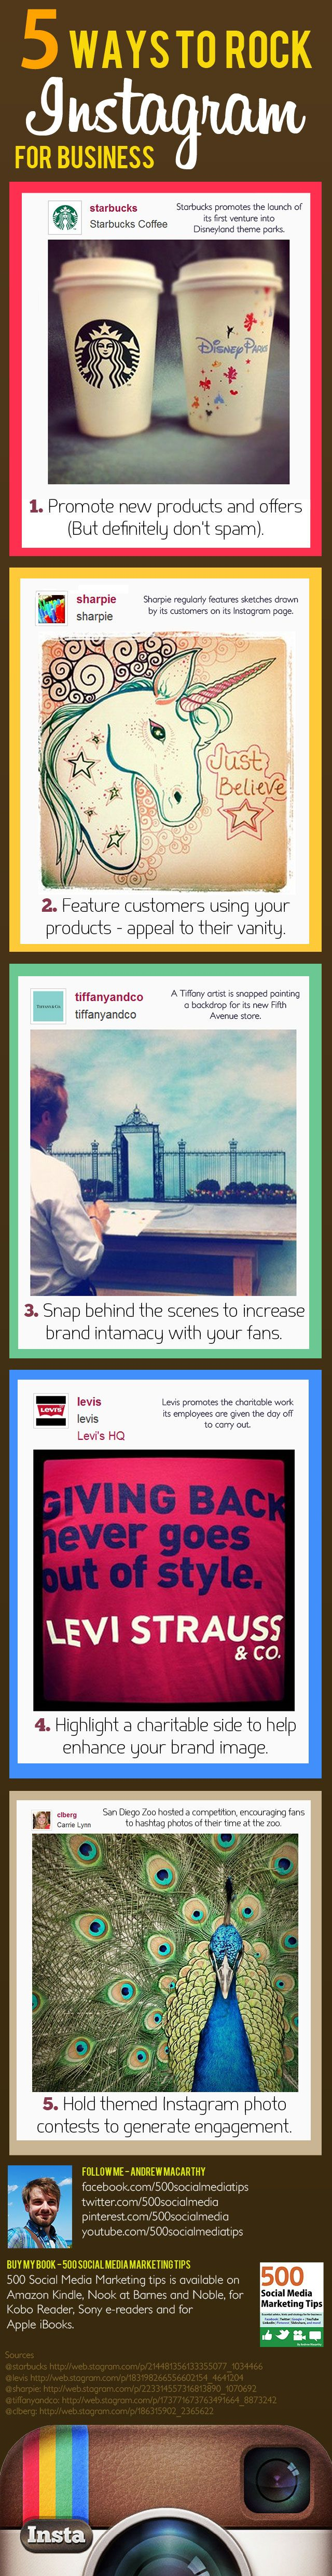 [Infographic] 5 Ways To Rock #Instagram For Business